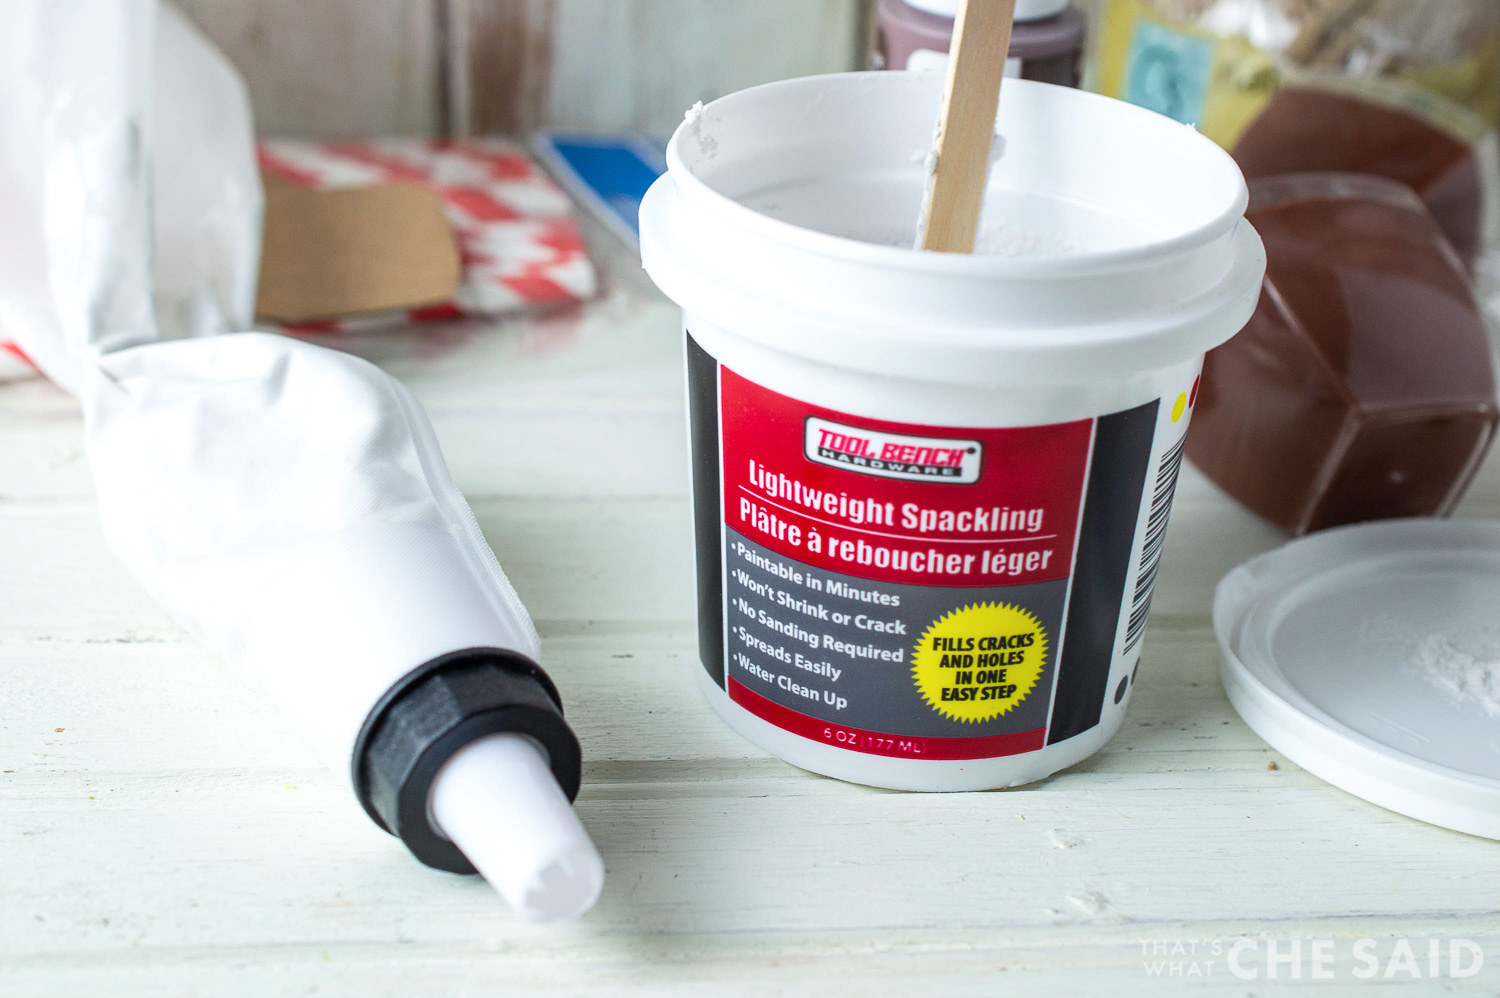 Dollar store spackle container and piping bag filled with it